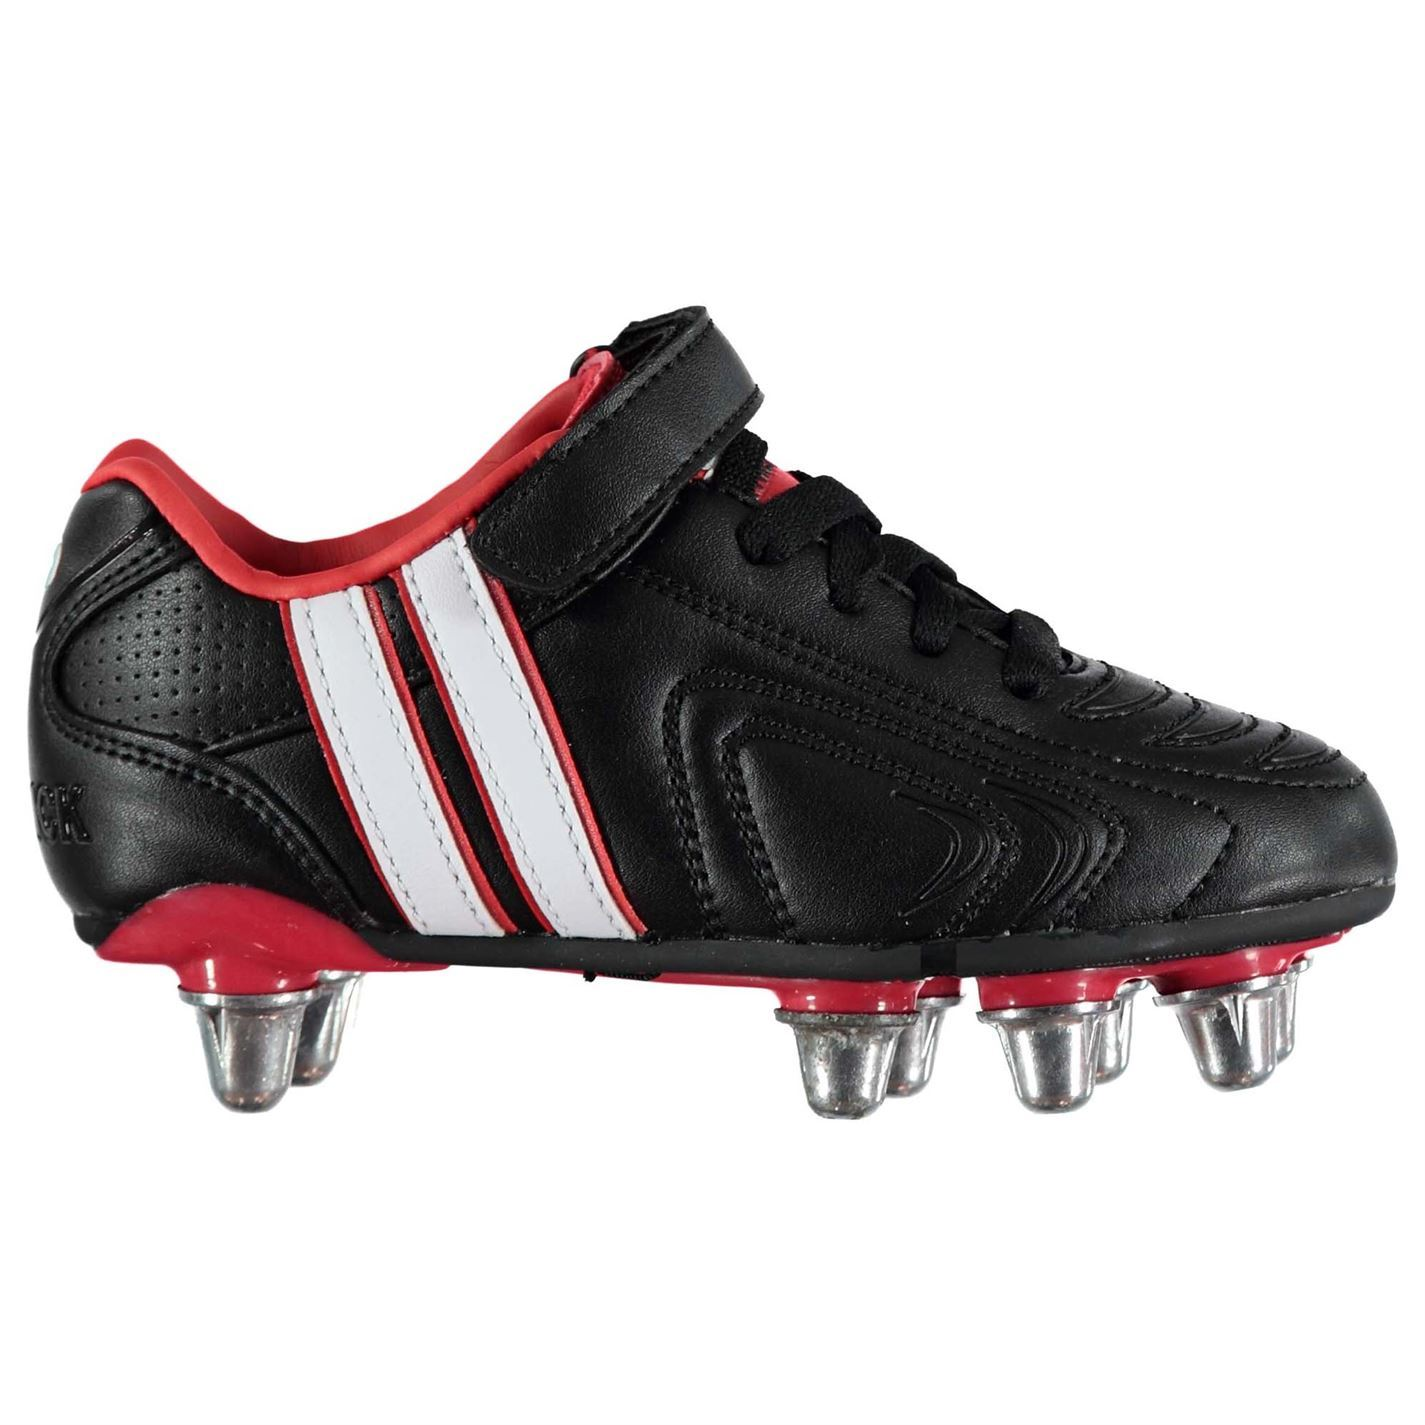 db4f80209 ... discount patrick kids power x childrens rugby boots boys 7d685 98f5e